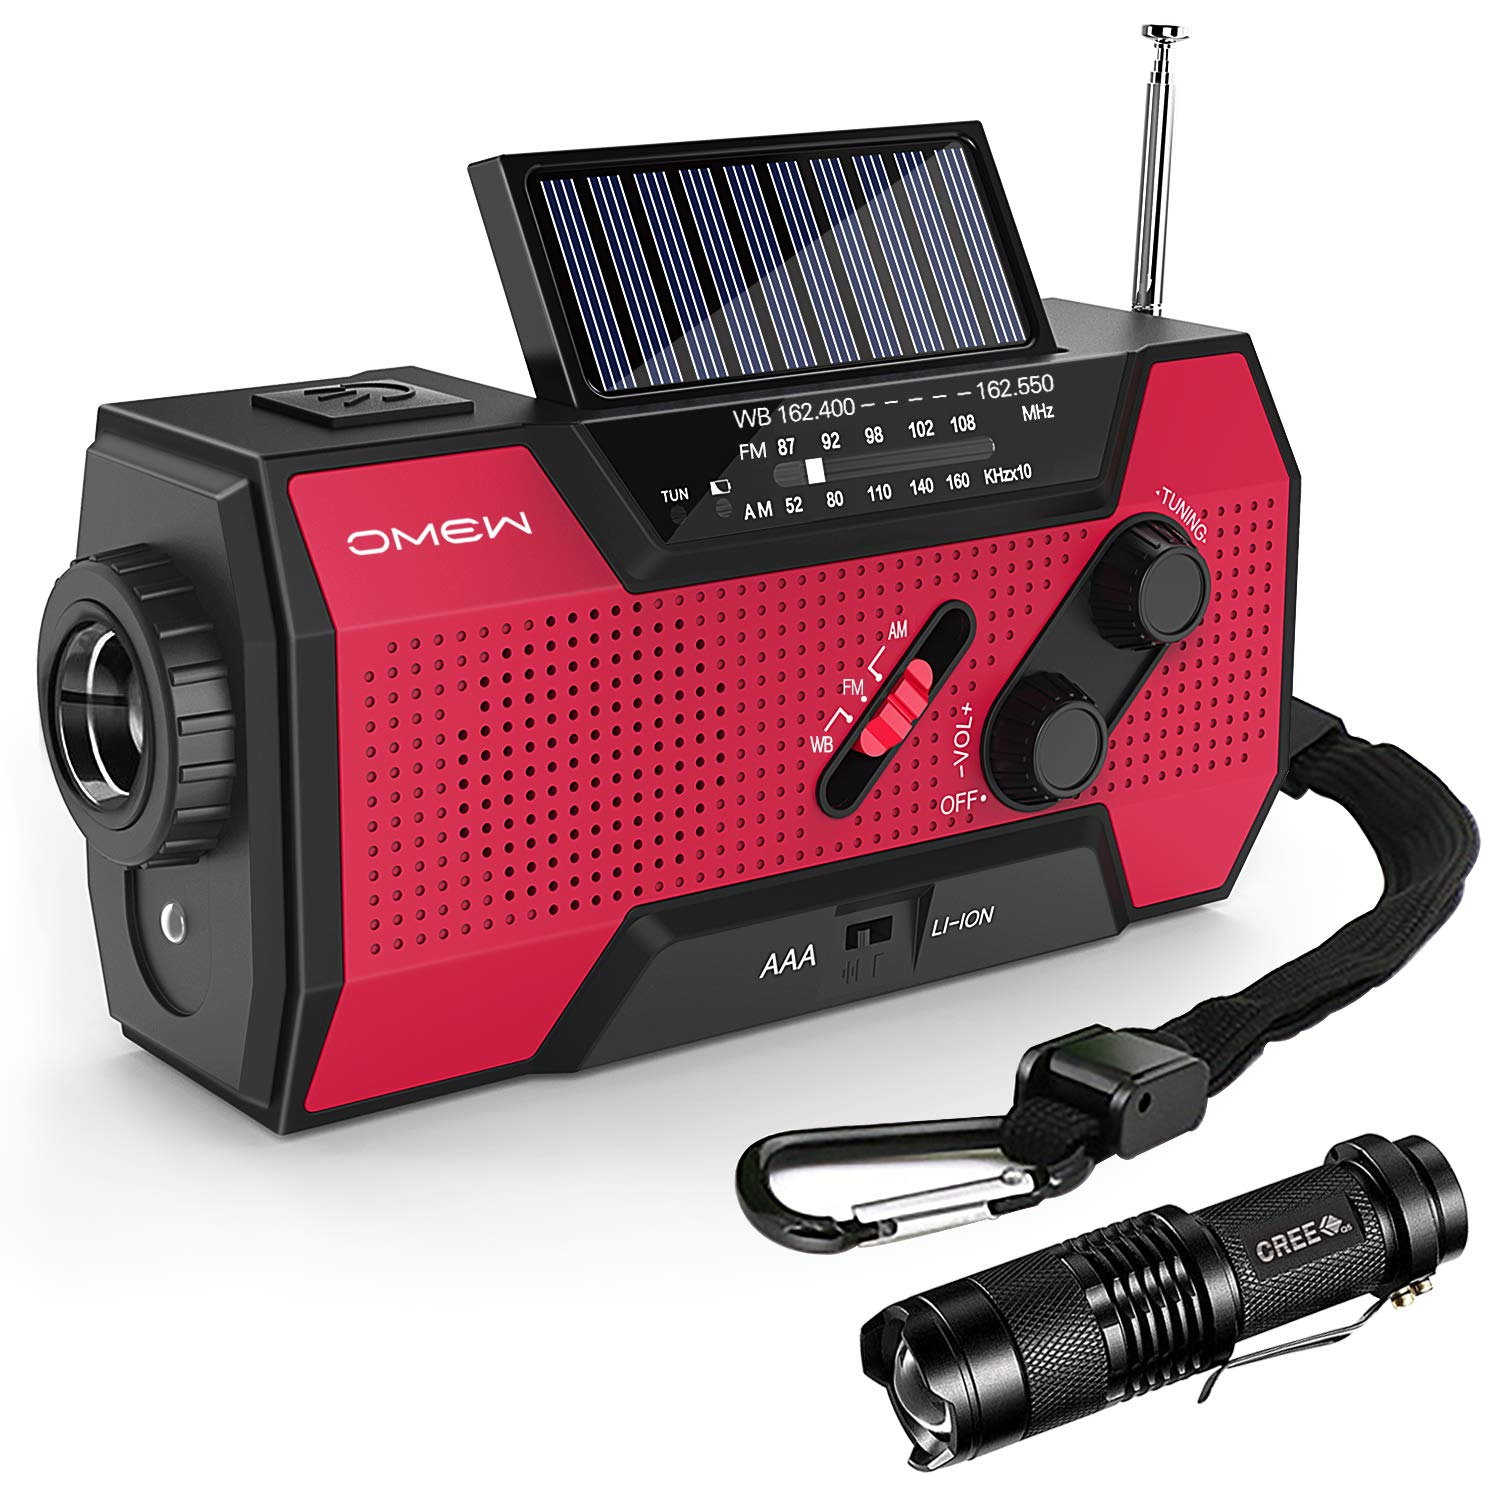 Emergency Weather Radio,Omew Portable Solar Hand Crank NOAA Weather Radio with AM/FM, LED Lamp & 2000mAh Power Bank Phone Charger & SOS Alarm and Waterproof Handheld Flashlight by Omew